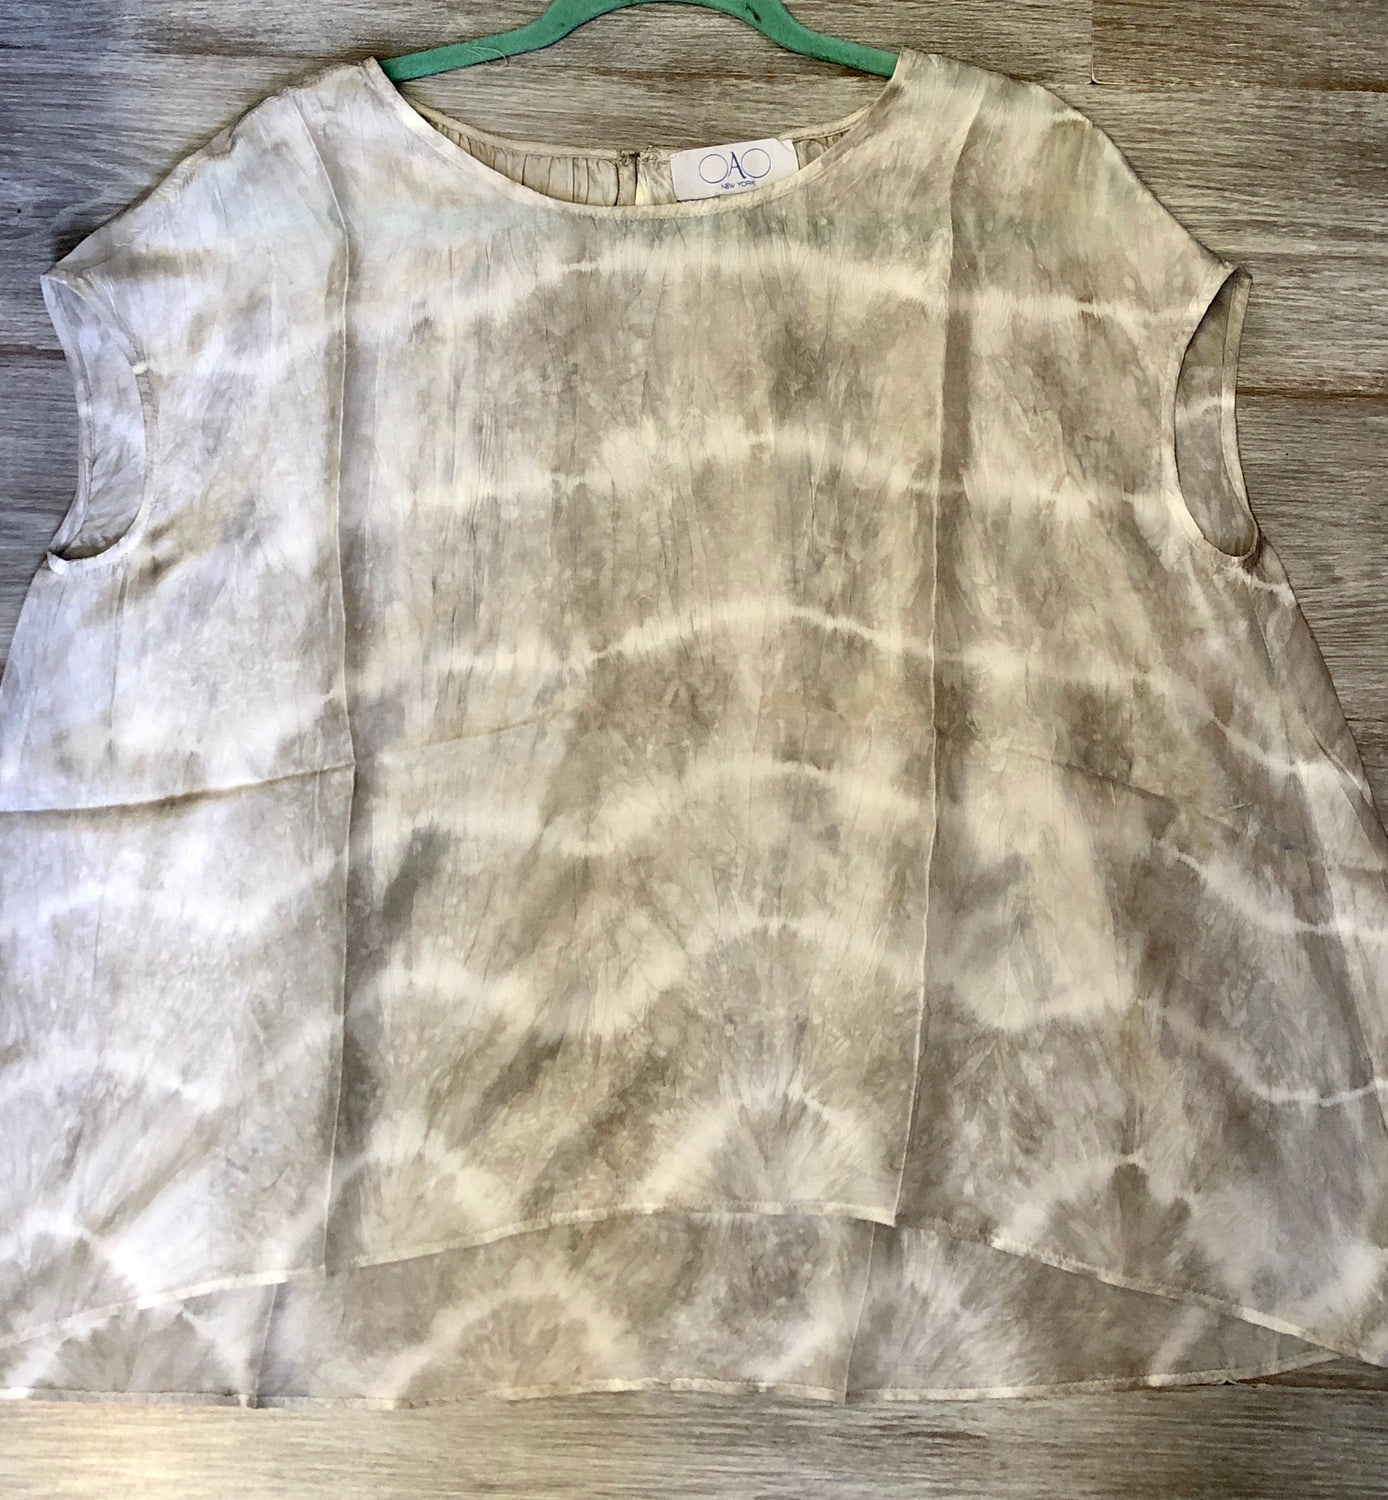 OAO Silk Top